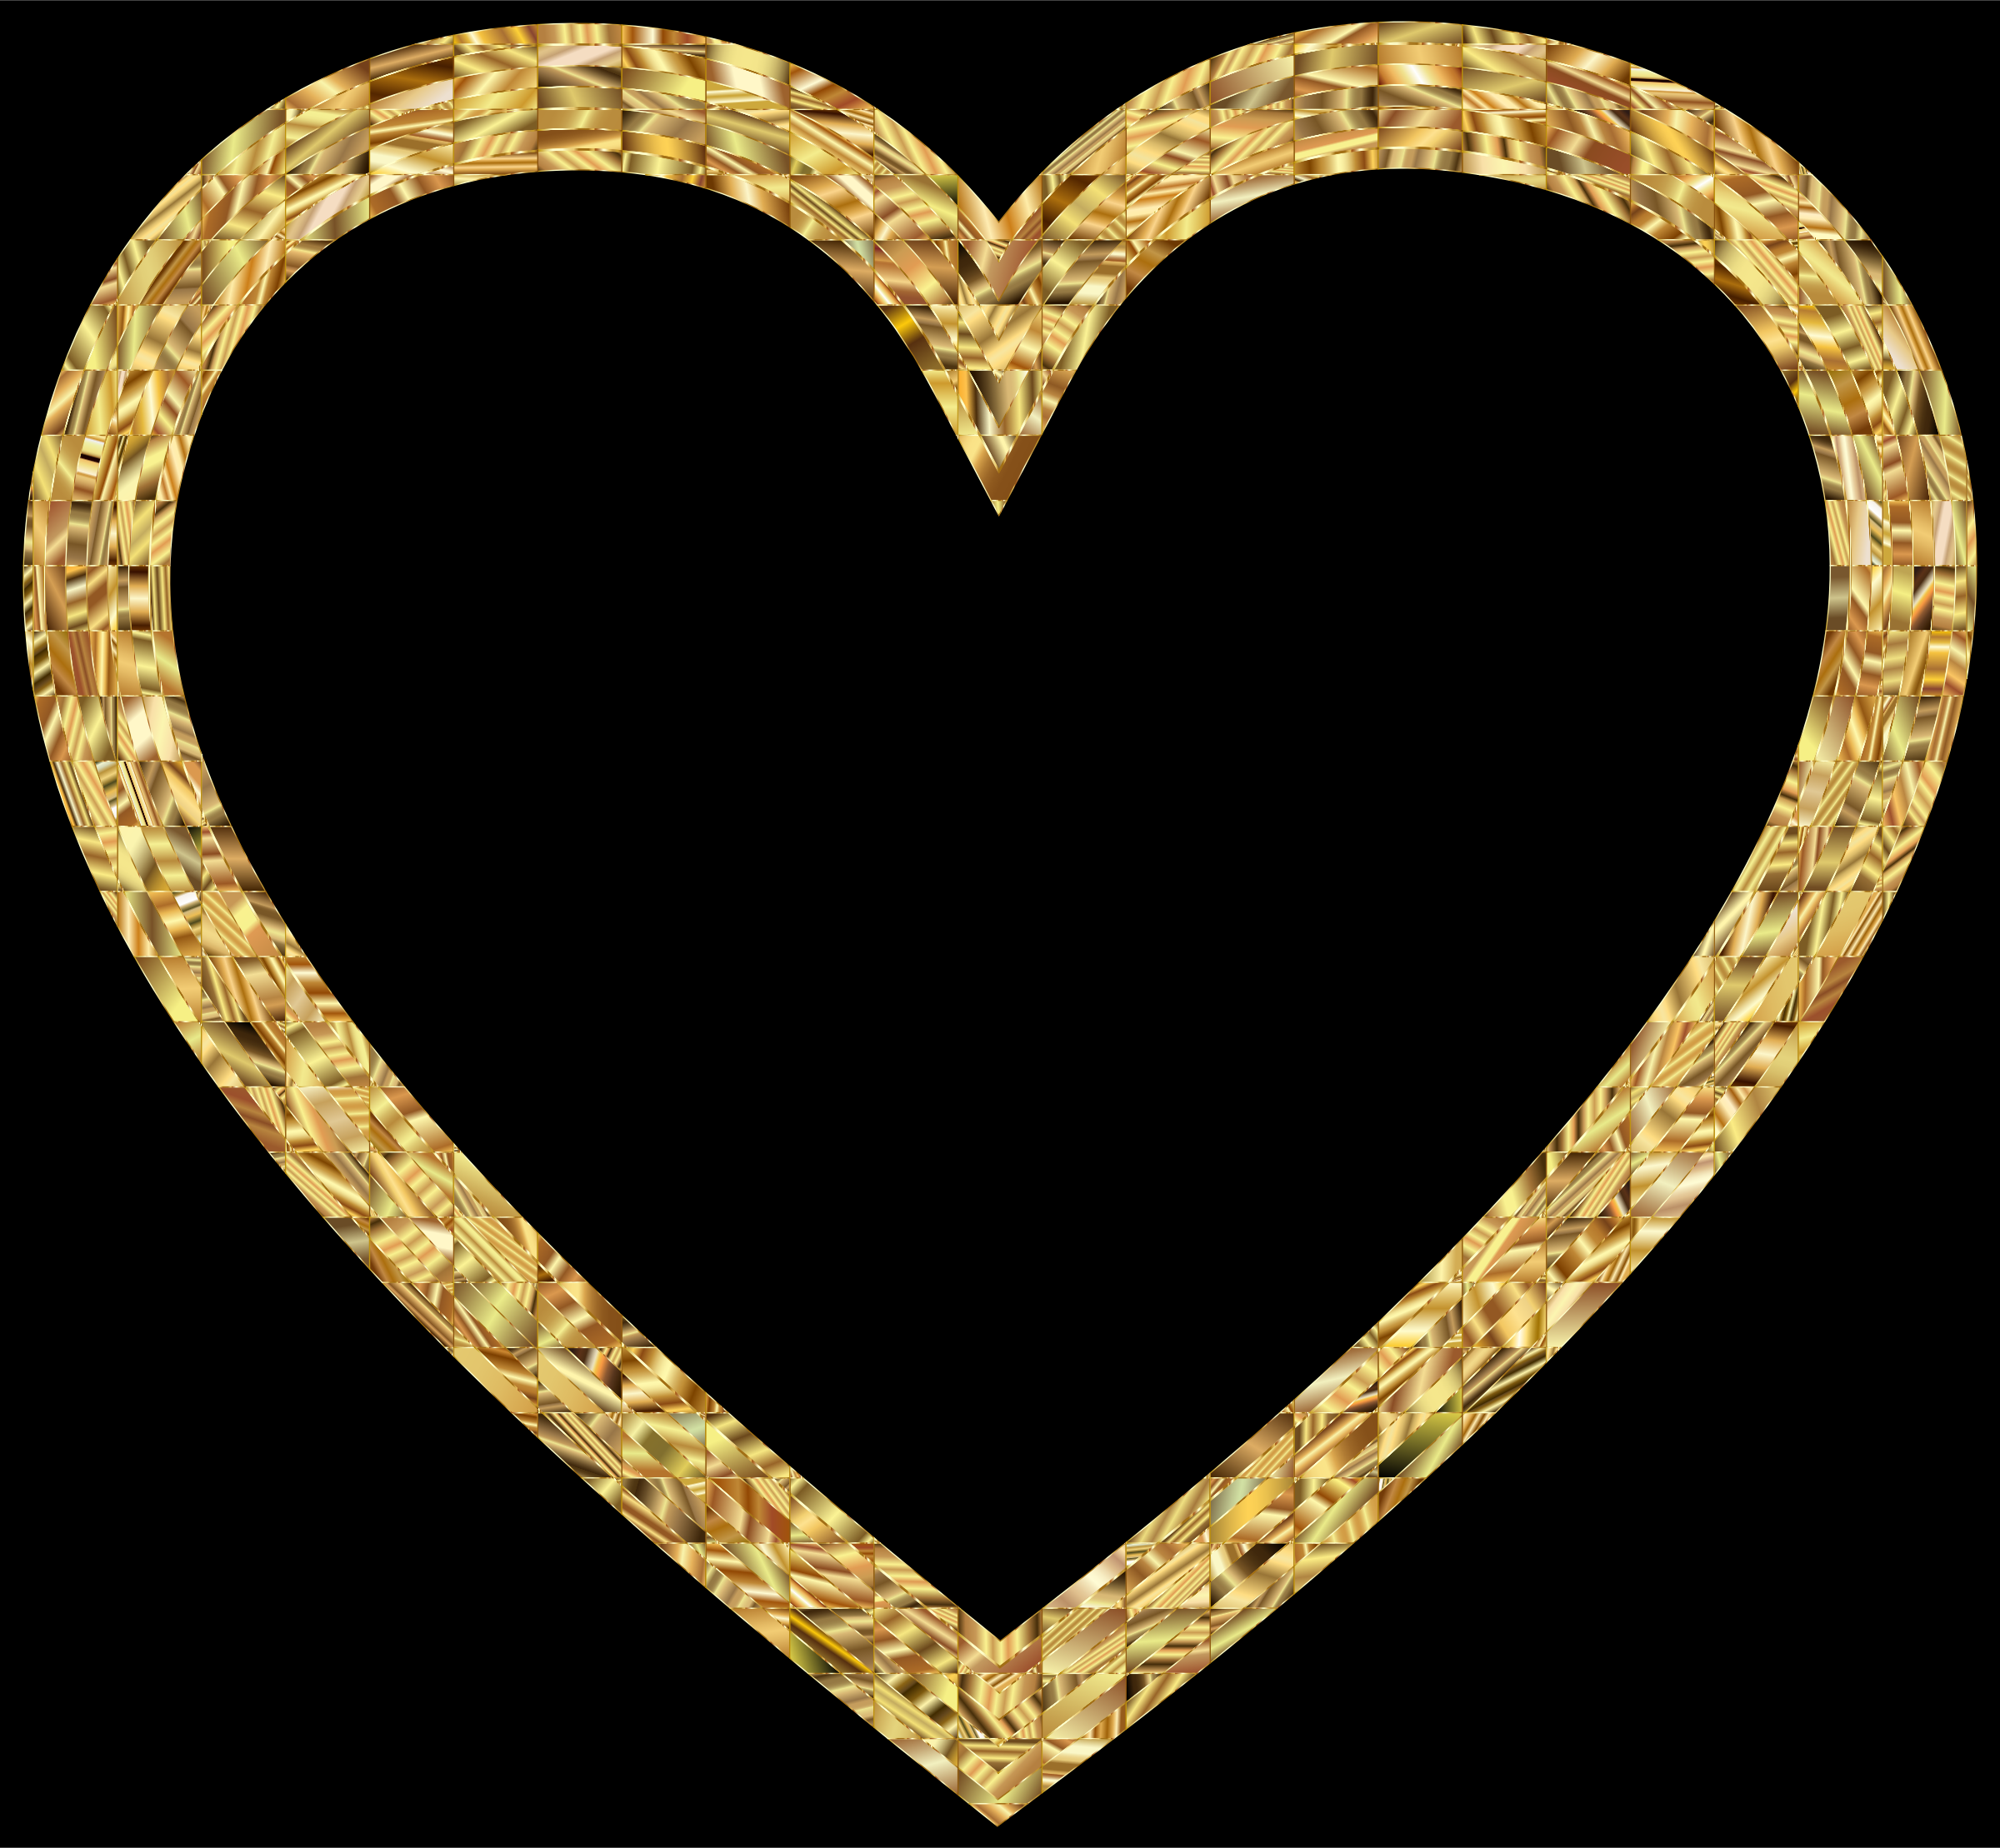 2 gold hearts clipart 10 free Cliparts | Download images ... (2400 x 2218 Pixel)